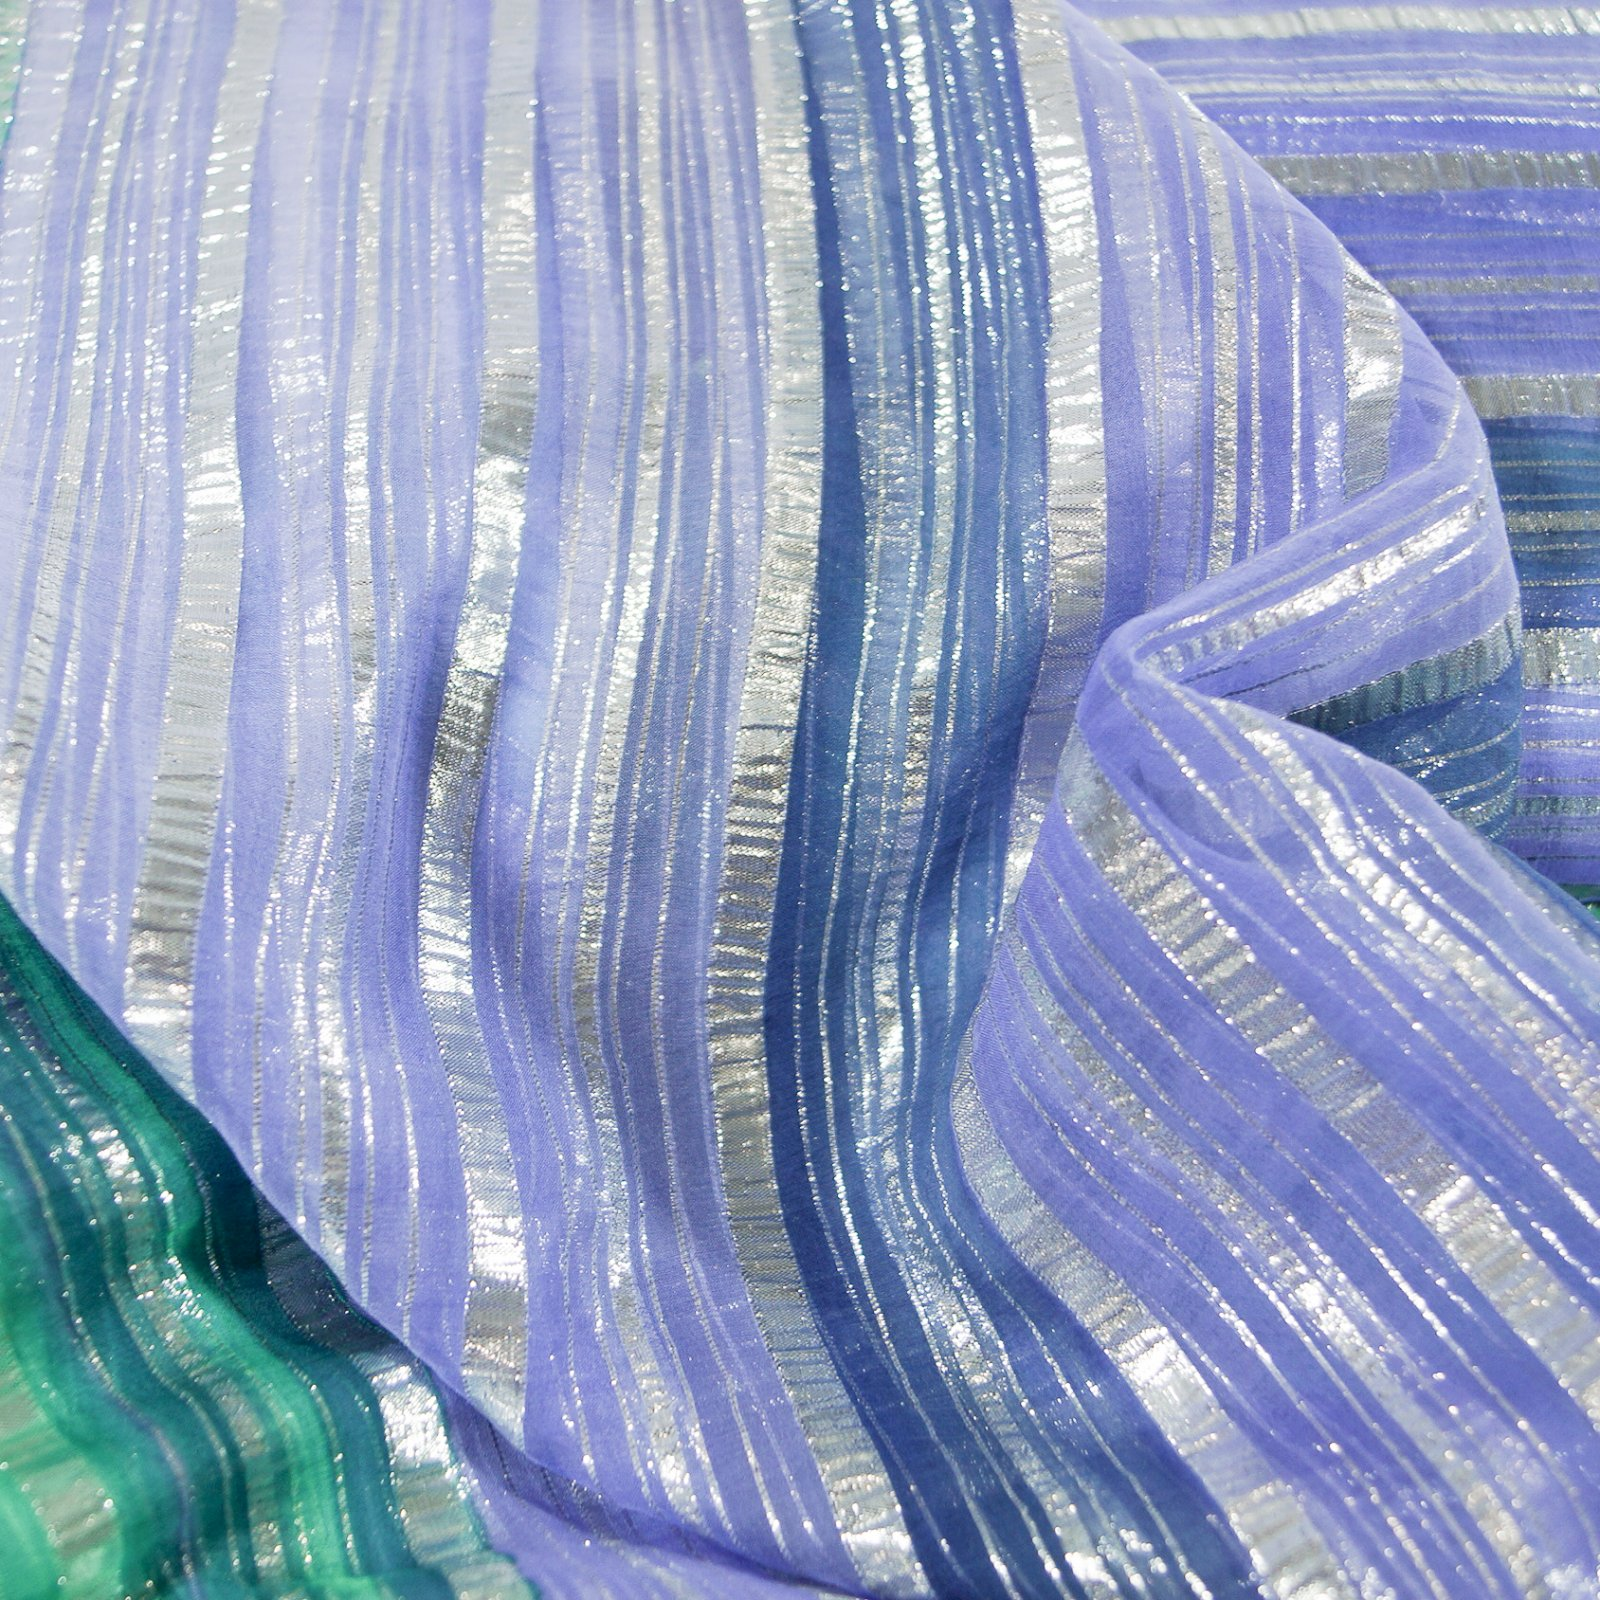 Silk - Bright-Iridescent Stripes in Tropical Oceanic Blues